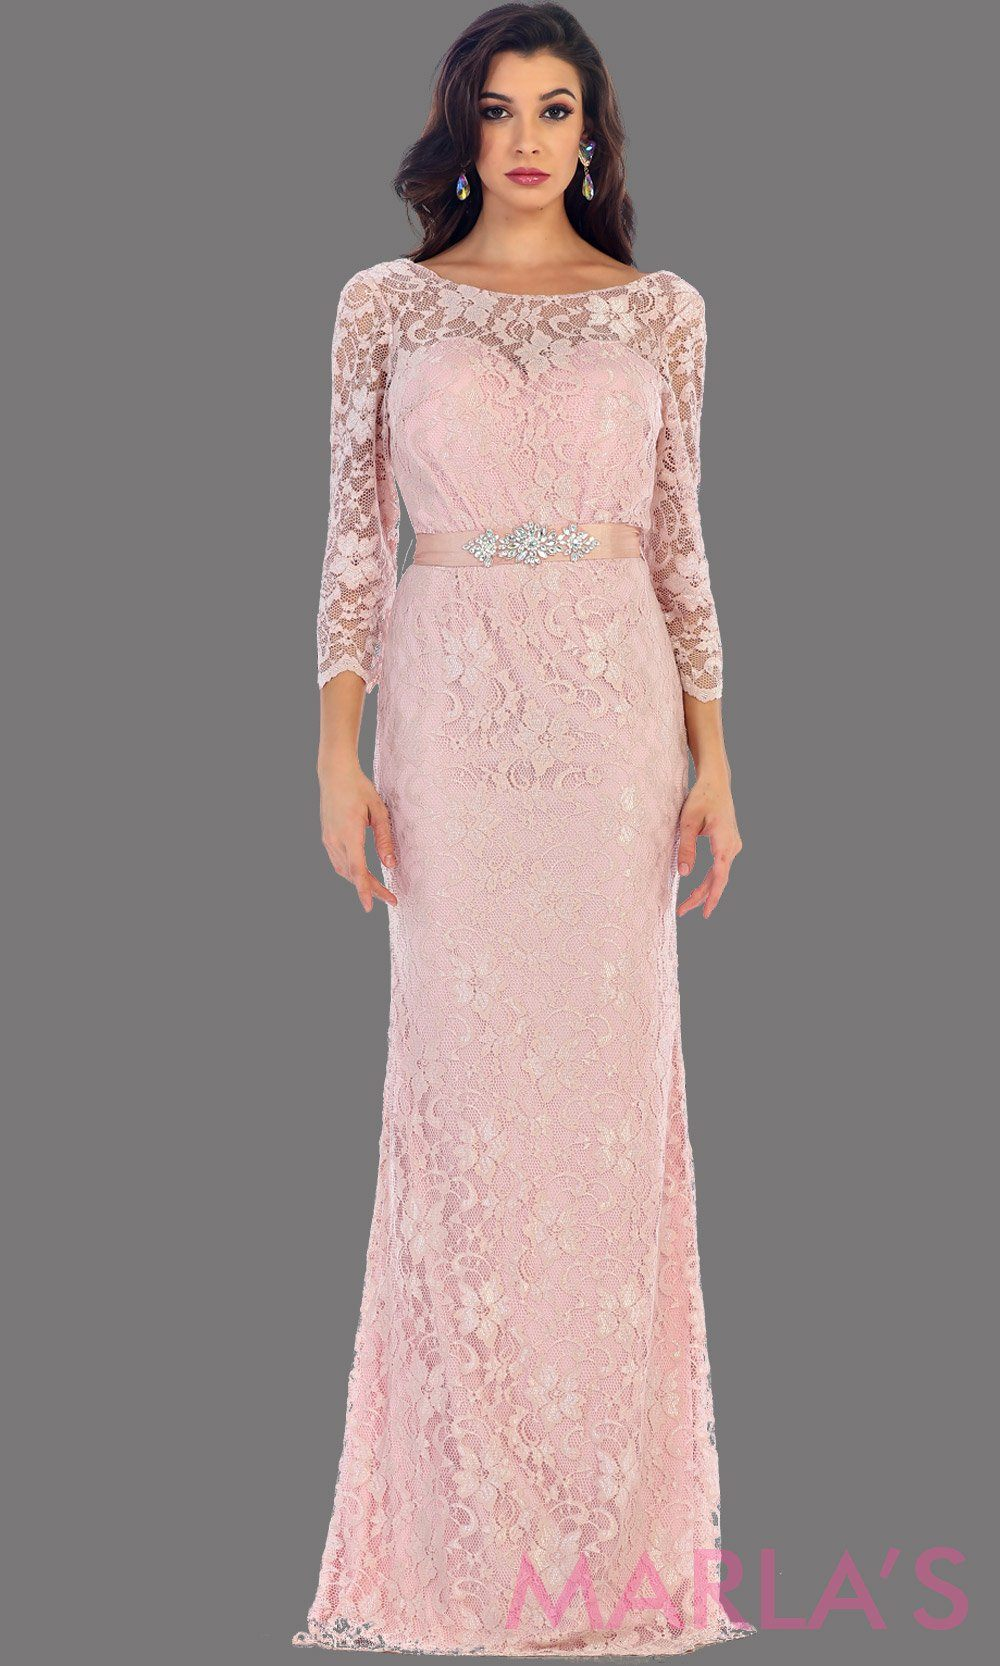 Long sleeve pink lace dress with detachable belt. This beautiful modest full length gown is a perfect bridesmaid dress, blush prom dress, simple bridal dress. Available in plus sizes